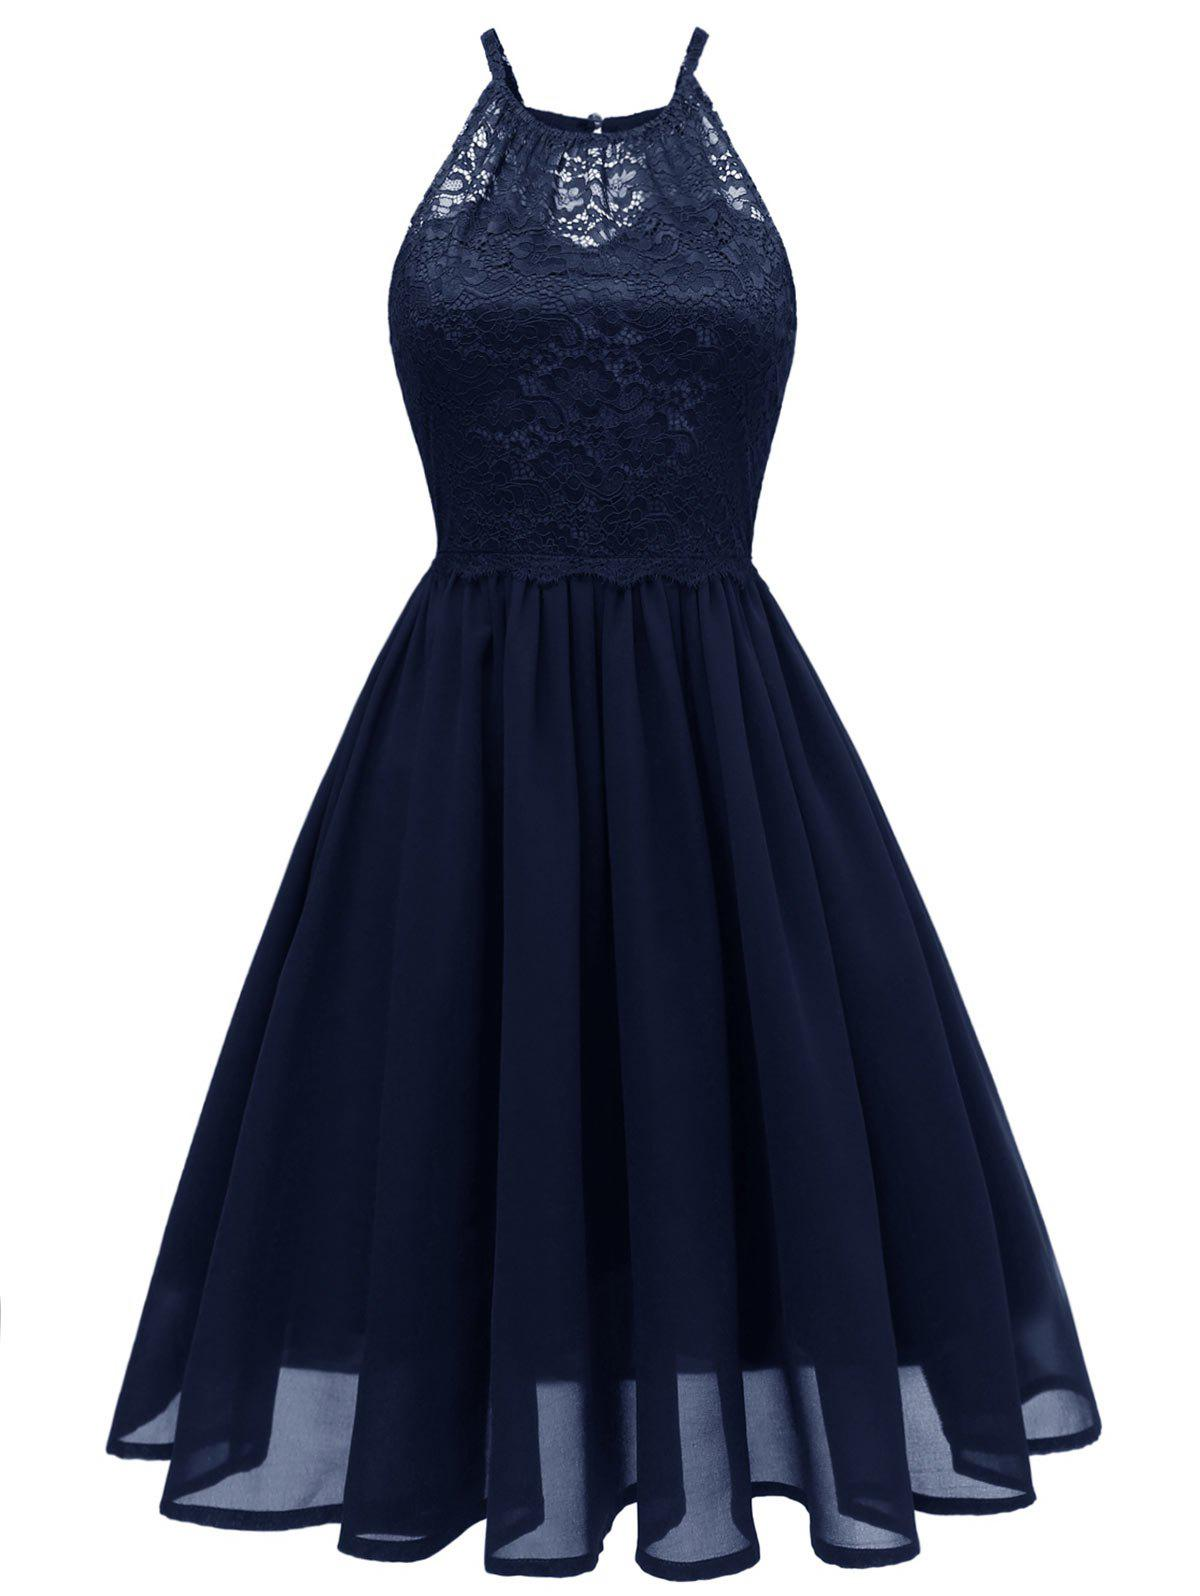 Shops Lace Bodice Fit and Flare Dress